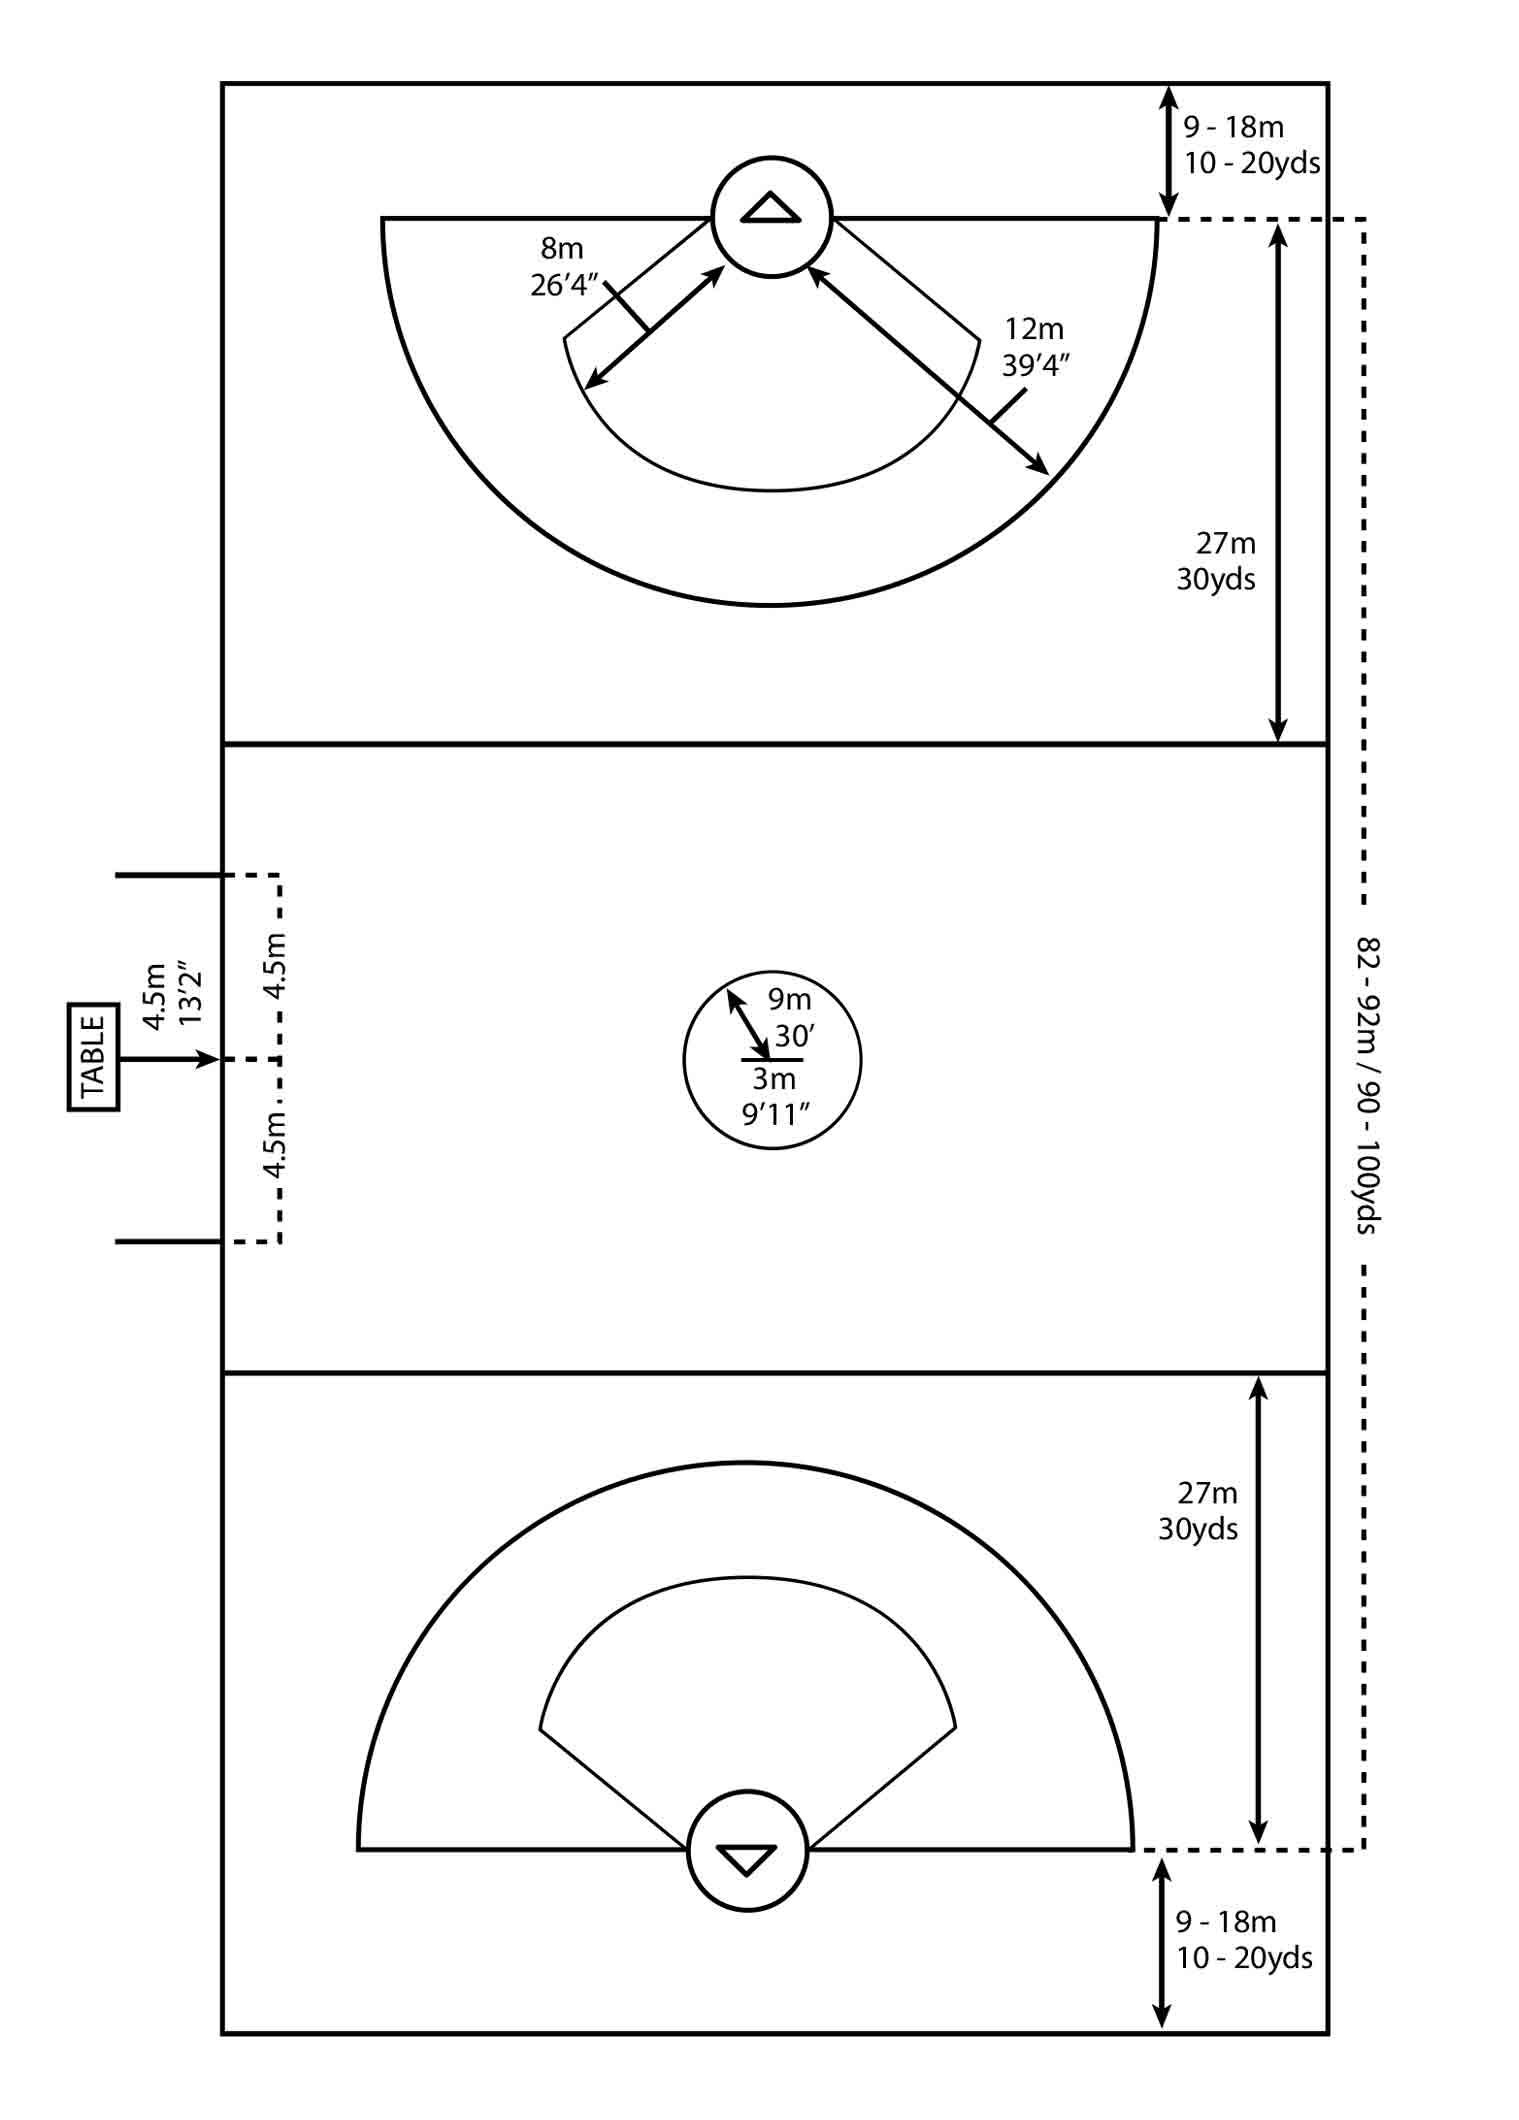 womens girls official lacrosse field diagram